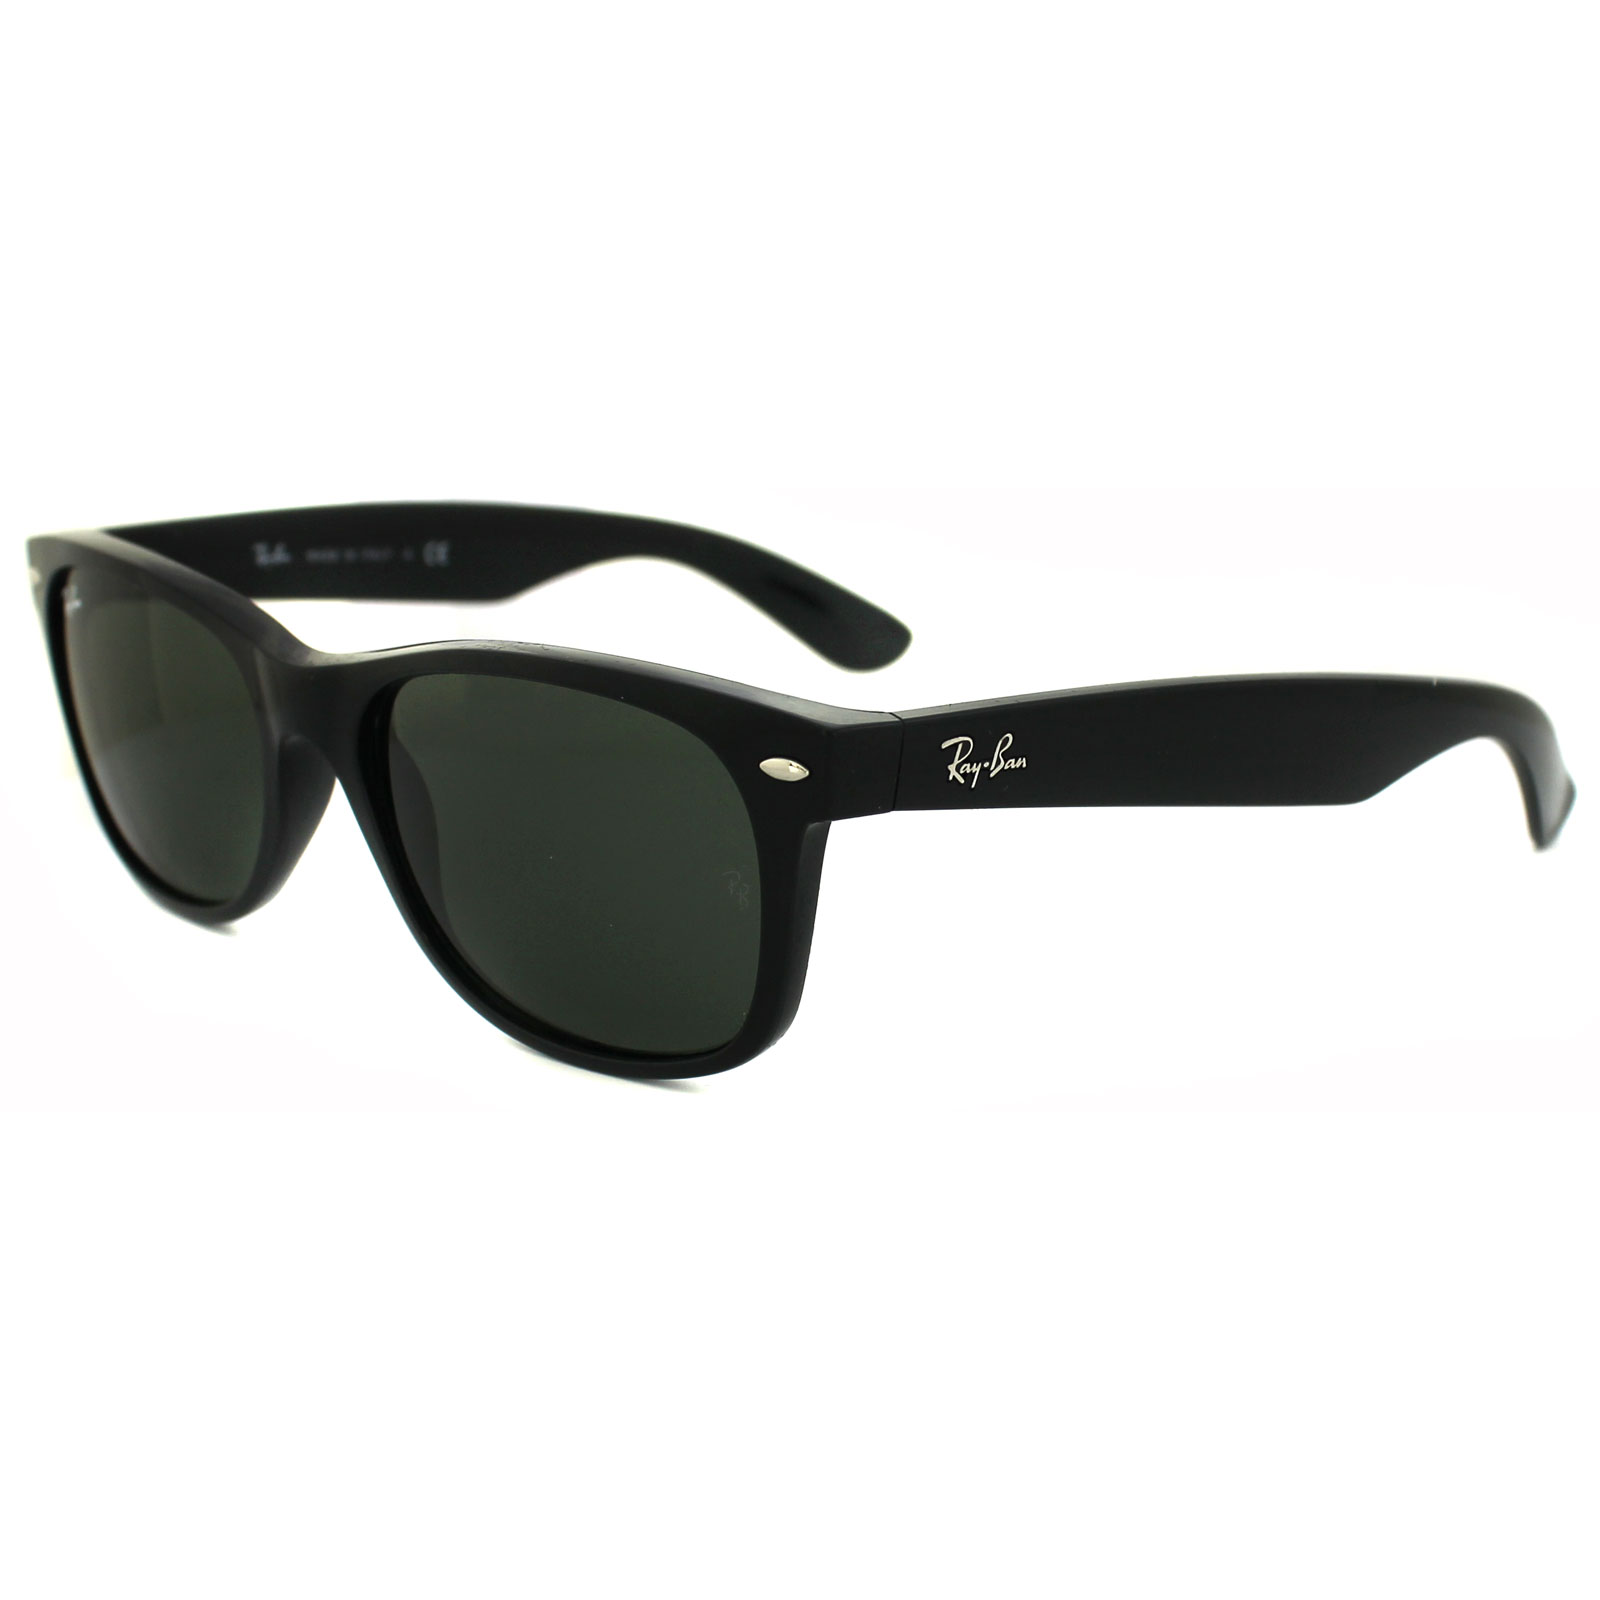 ray ban clubmaster best price  Cheap Ray-Ban New Wayfarer 2132 Sunglasses - Discounted Sunglasses